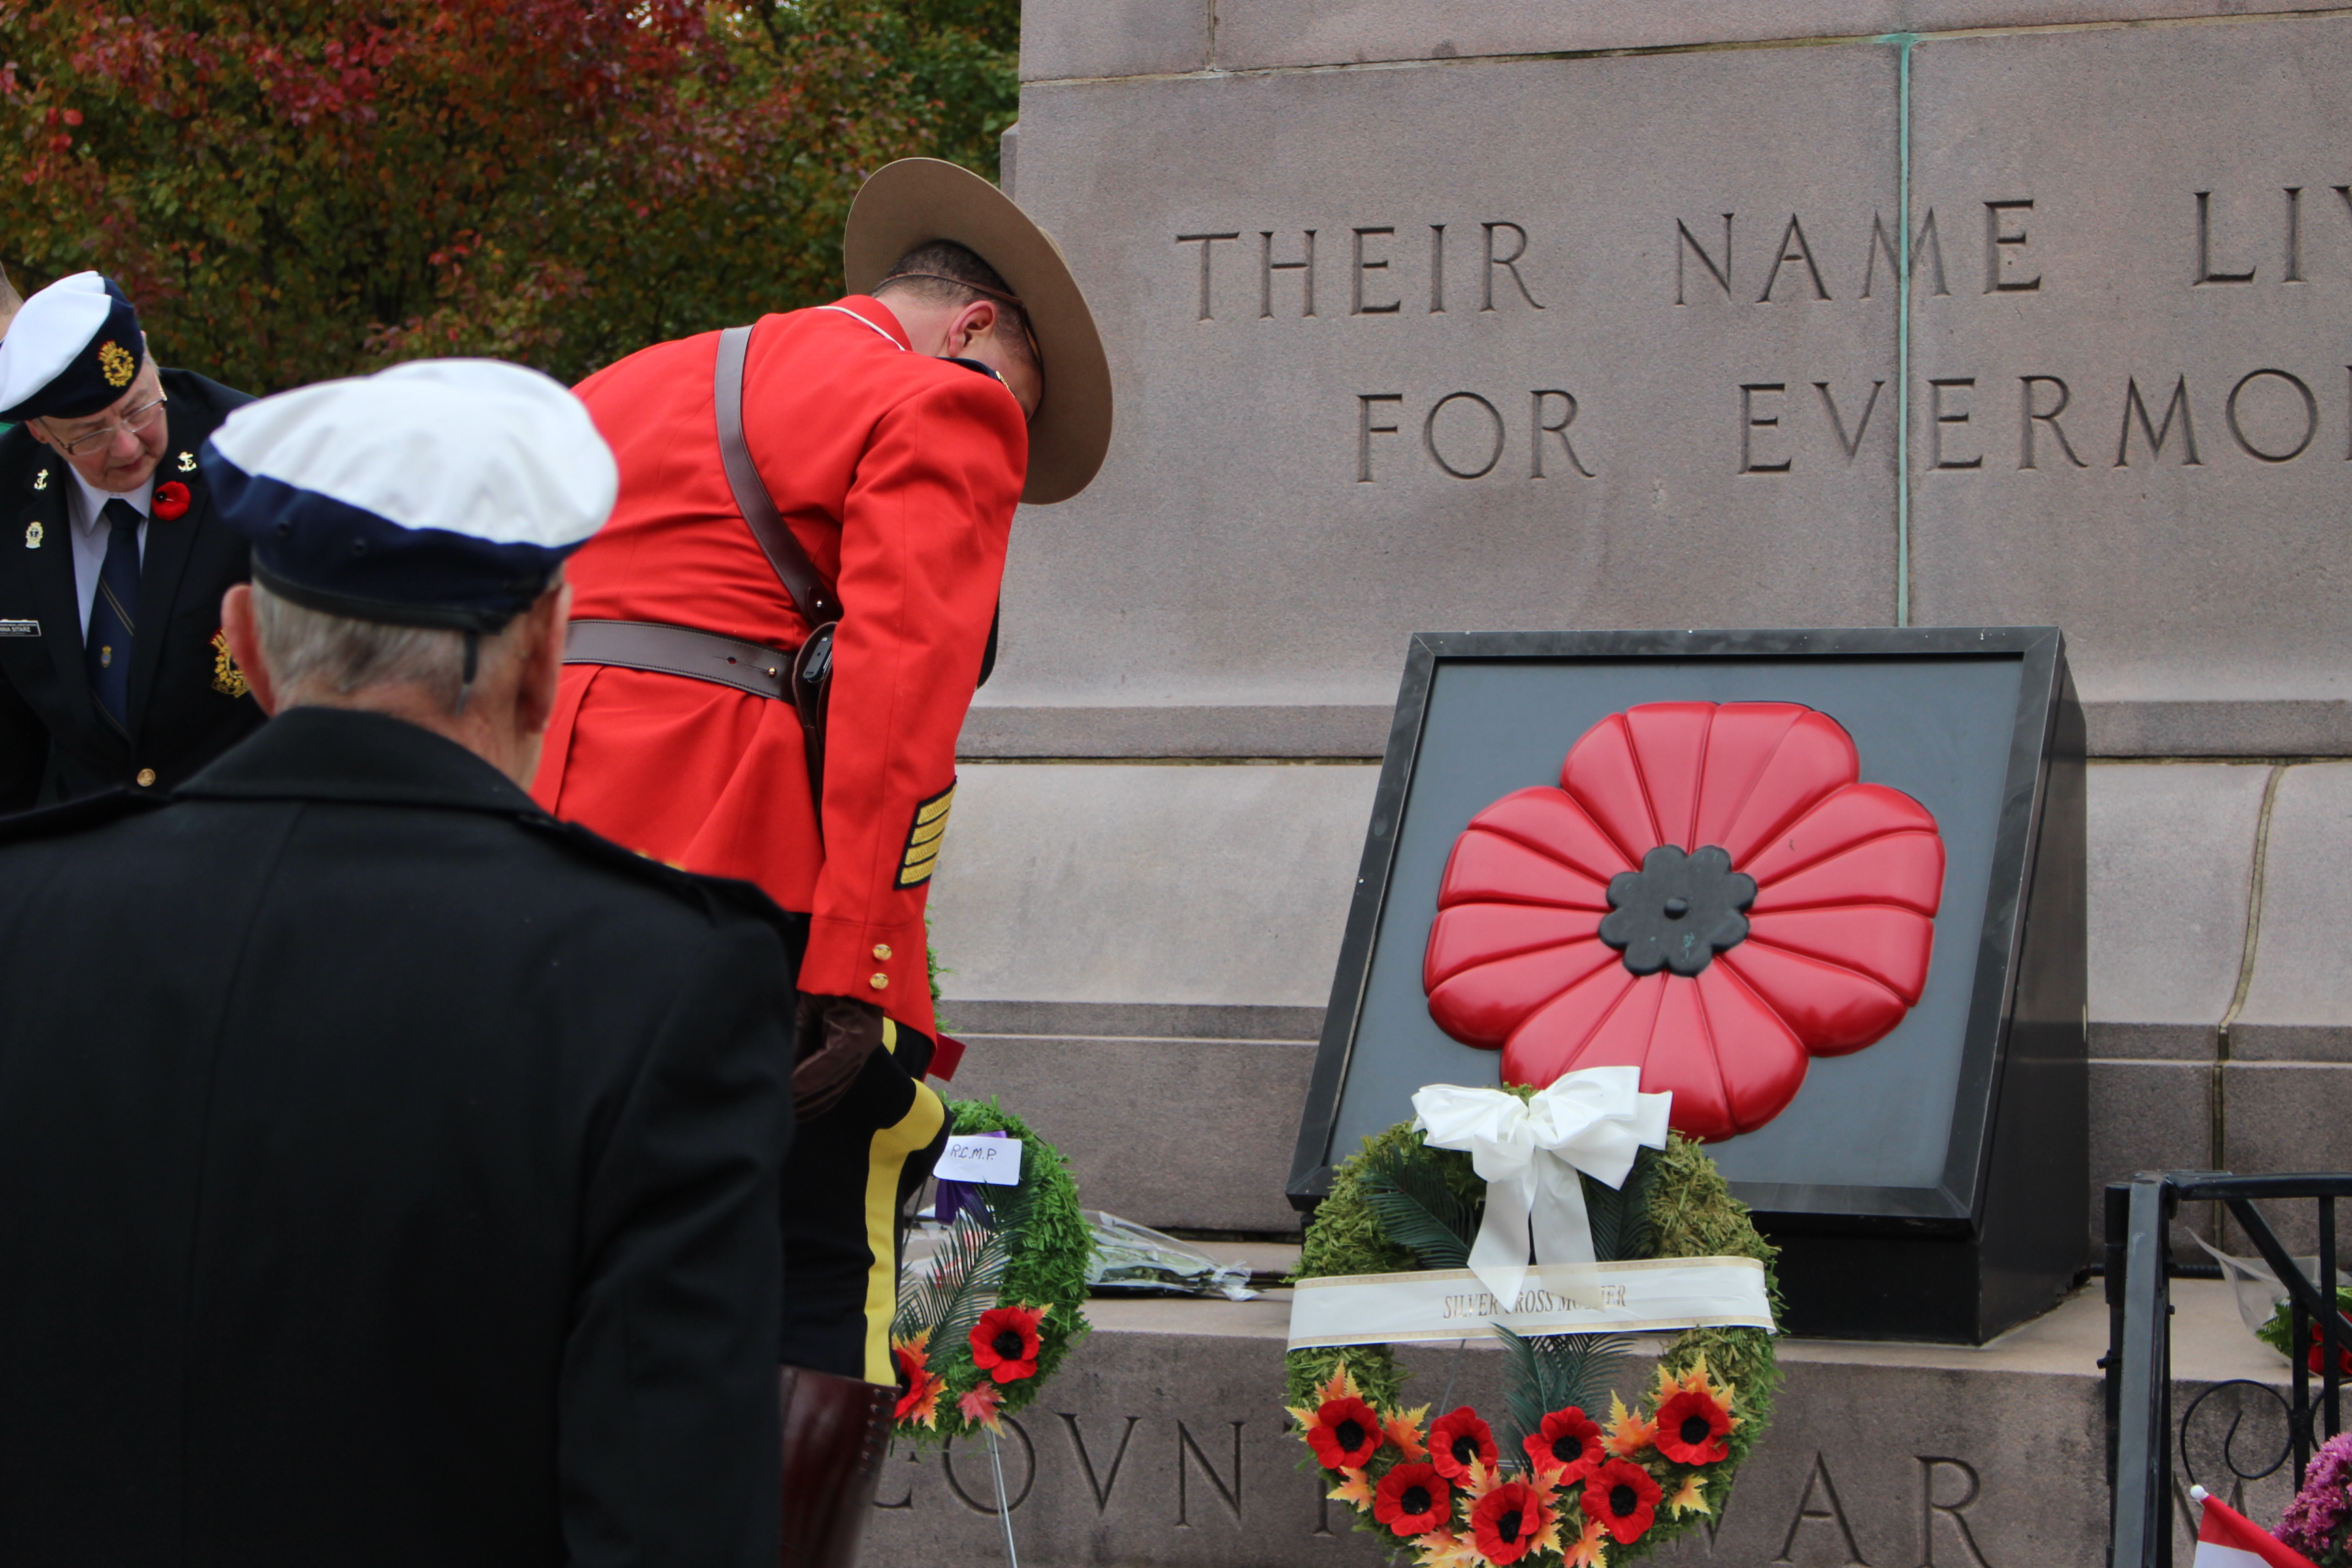 Hundreds gather at Windsor's cenotaph during a Remembrance Day ceremony on November 9, 2014. (Photo by Jason Viau)